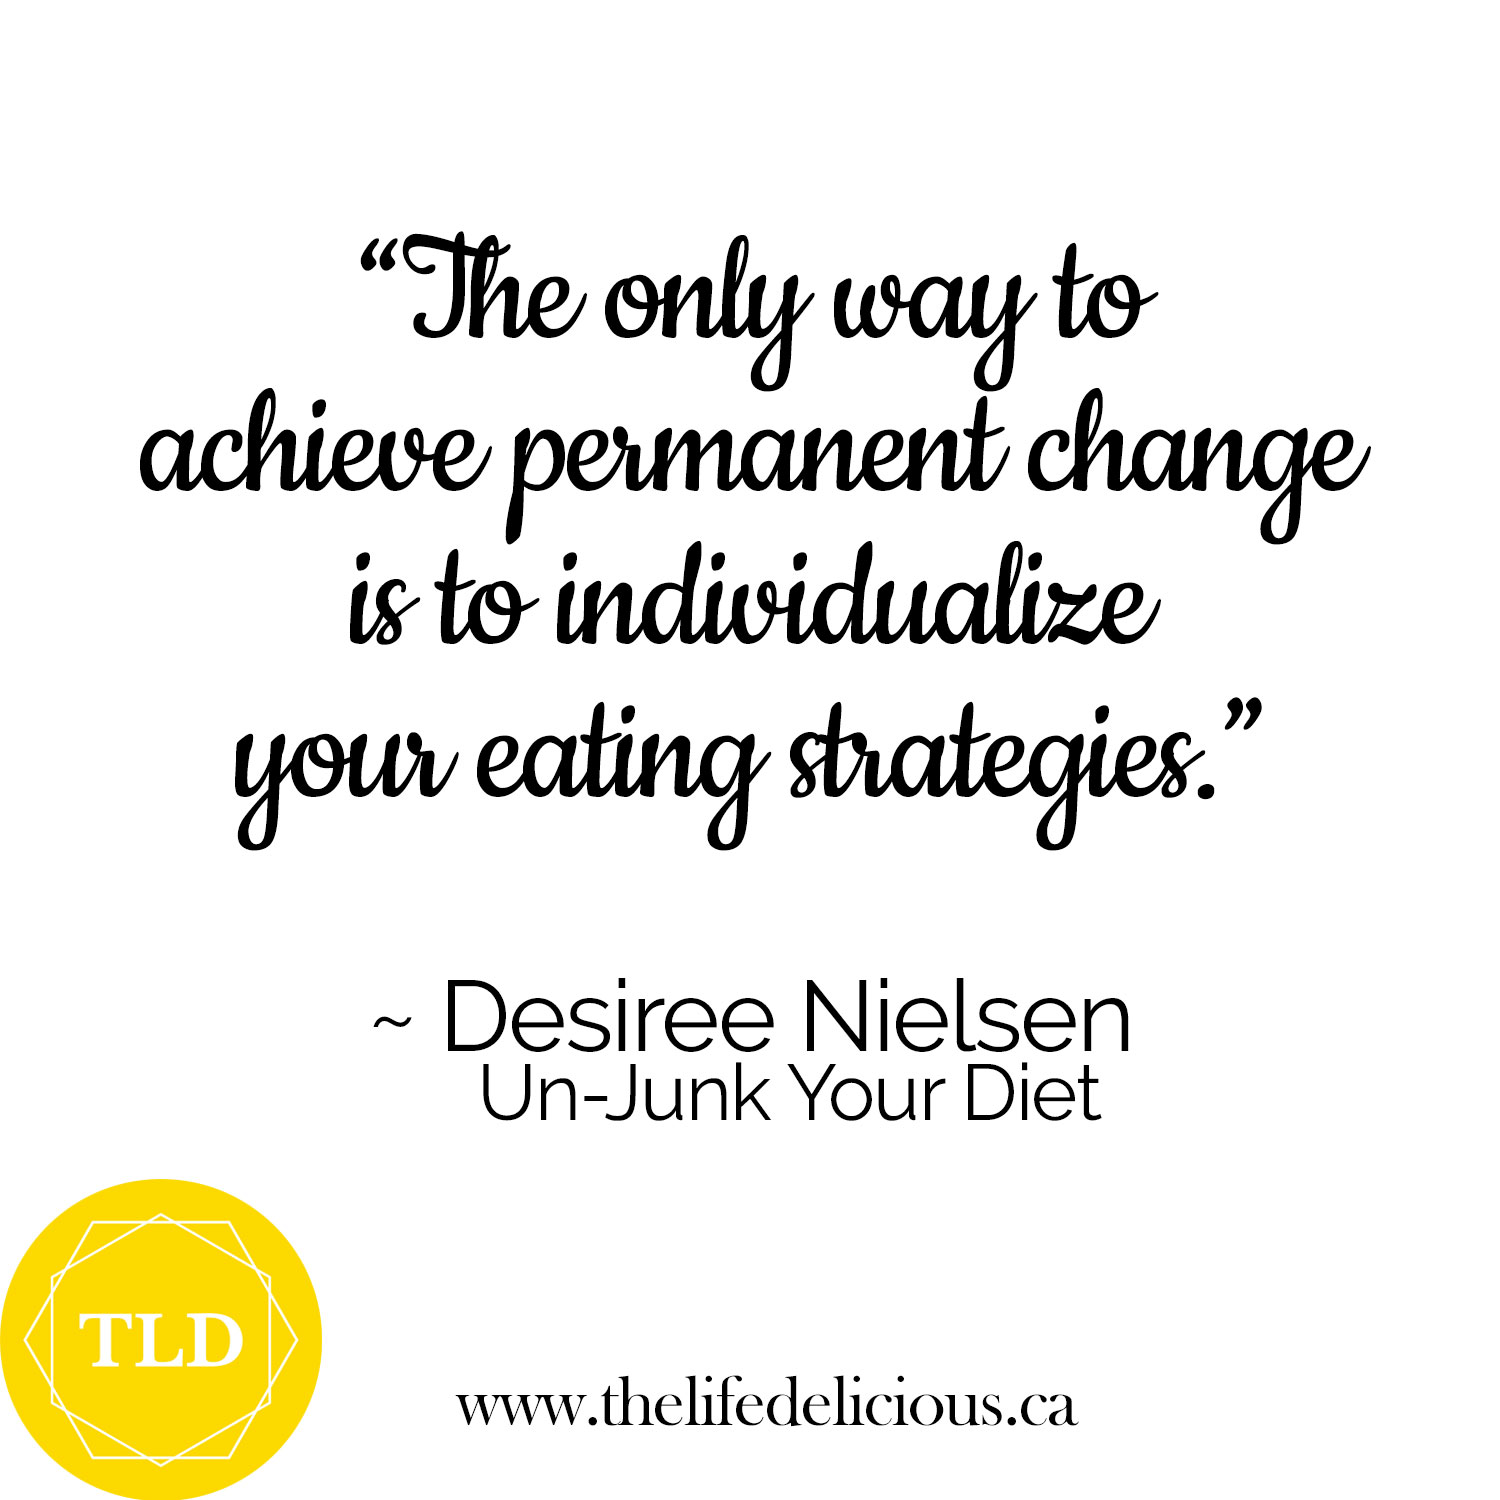 NUTRITION >>> So true! It's got to be right for YOU! Gather all the practical, research-based advice you can, then make it yours. ⁣  @DesireeNielsenRD's book, Un-Junk Your Diet: How to Shop, Cook, and Eat to Fight Inflammation and Feel Better Forever, is full of such advice!⁣  ⁣>>> Learn how to create menu plans and get your nervous system ready to support optimal absorption and elimination (glamorous, I know!) at the @OakBayBeachHotel Wellness Weekend, Feb 1-3, 2019! ⁣  ⁣I will walk you through The Life Delicious' complete curriculum, so you can support yourself by creating healthy habits across 5 pillars of wellness: Mindset, Movement, Nutrition, Sleep, and Connection.⁣